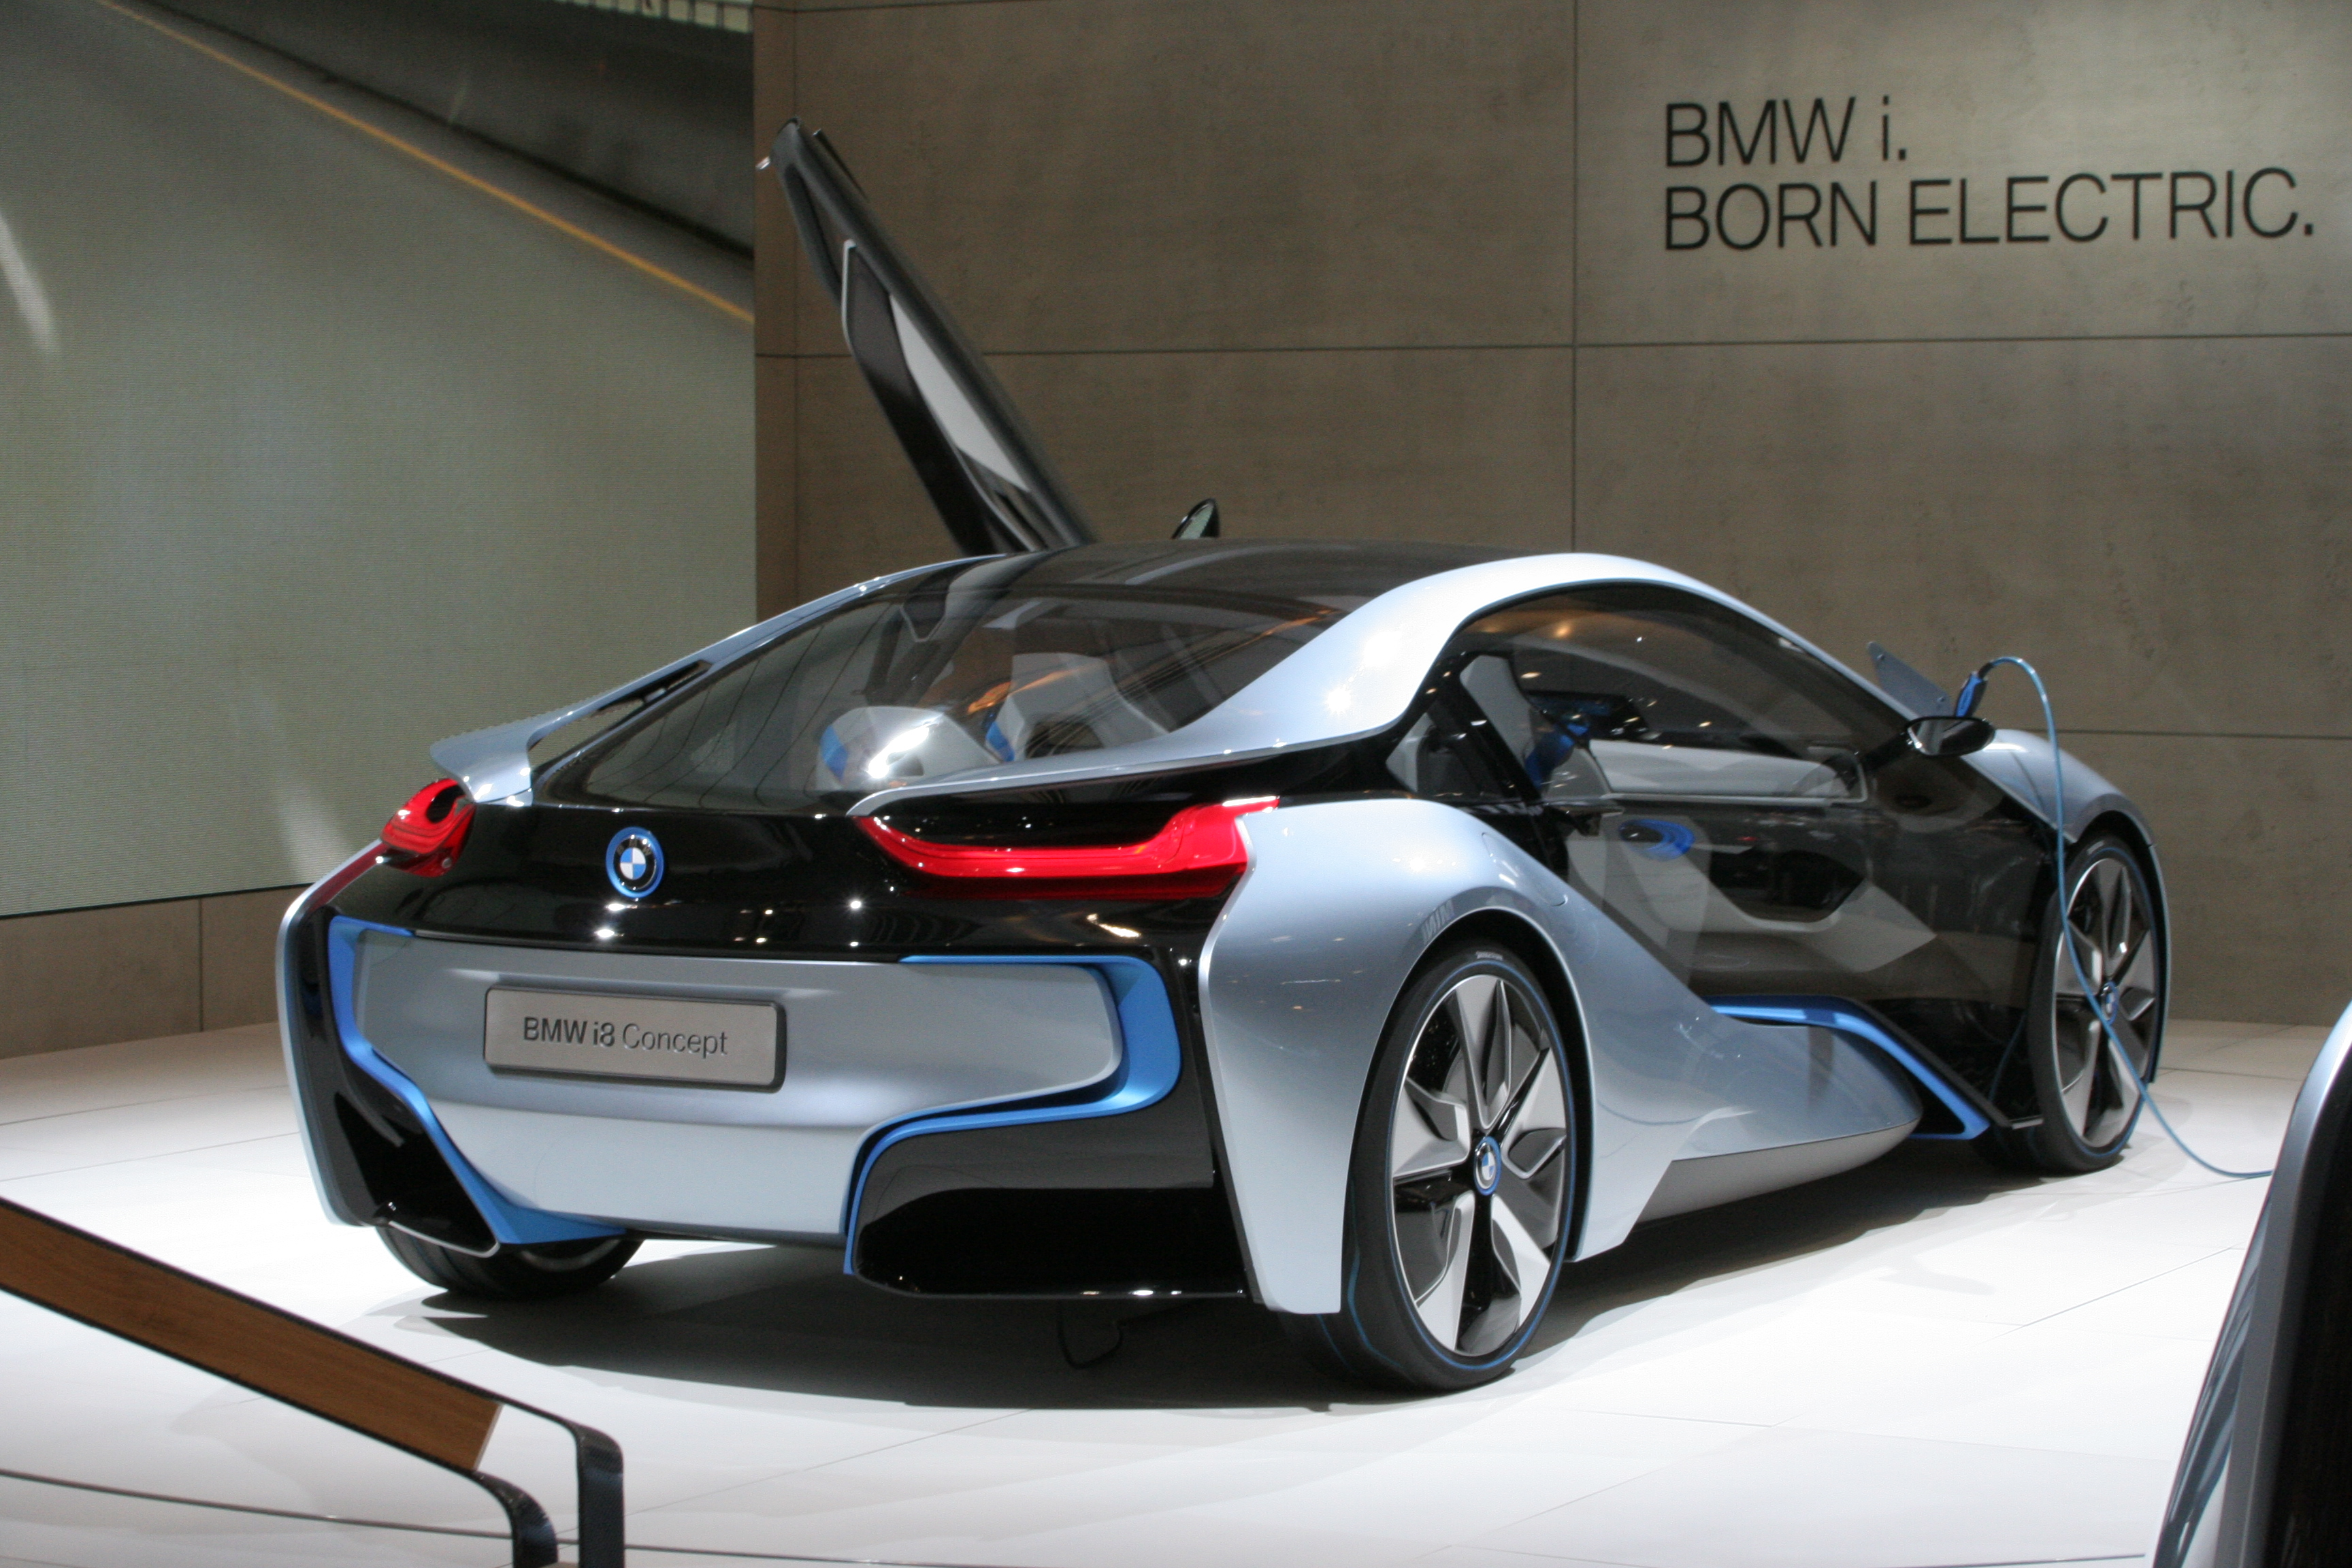 bmw images start 200 WeiLi Automotive Network